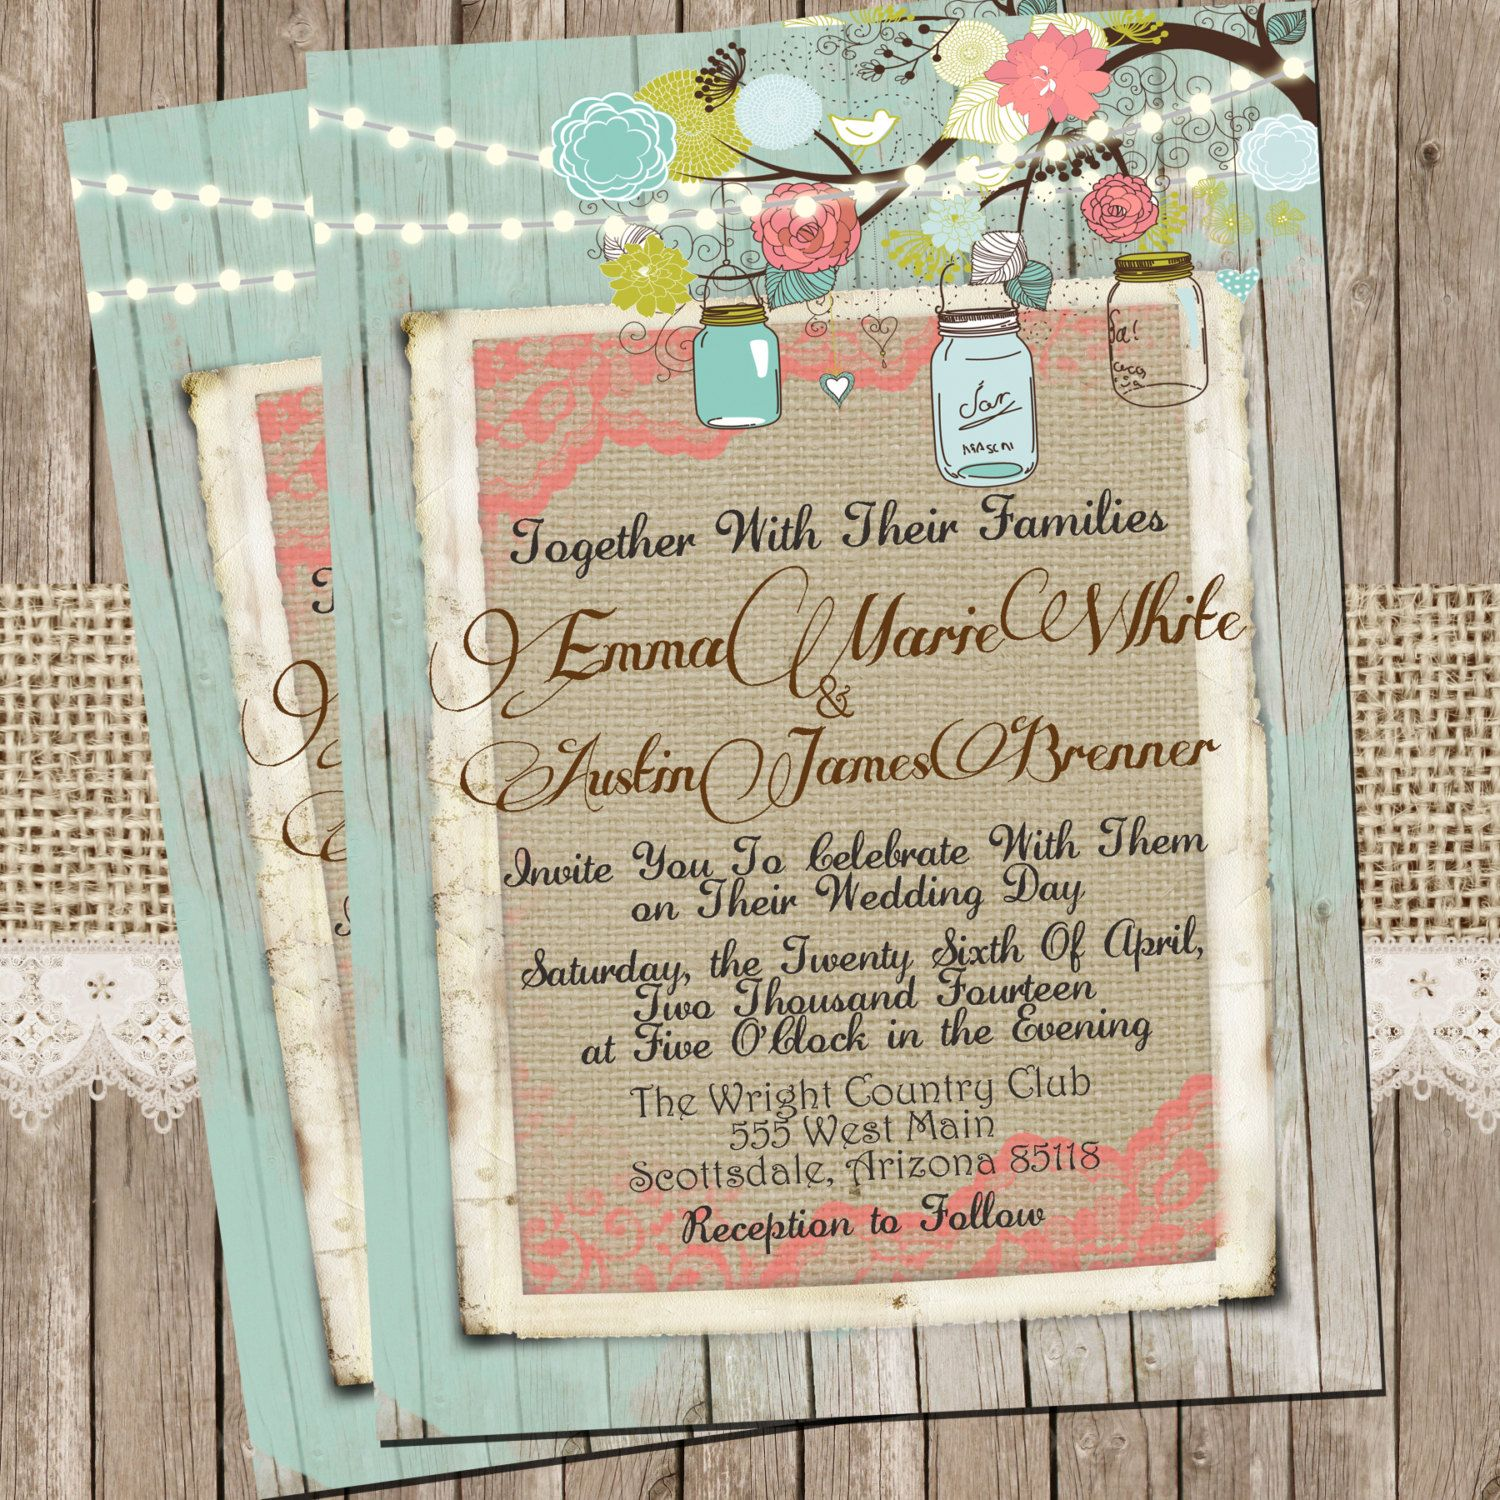 Coral And Mint Wedding Invitations: Mint And Coral Burlap And Lace Wedding By WallflowerEvents